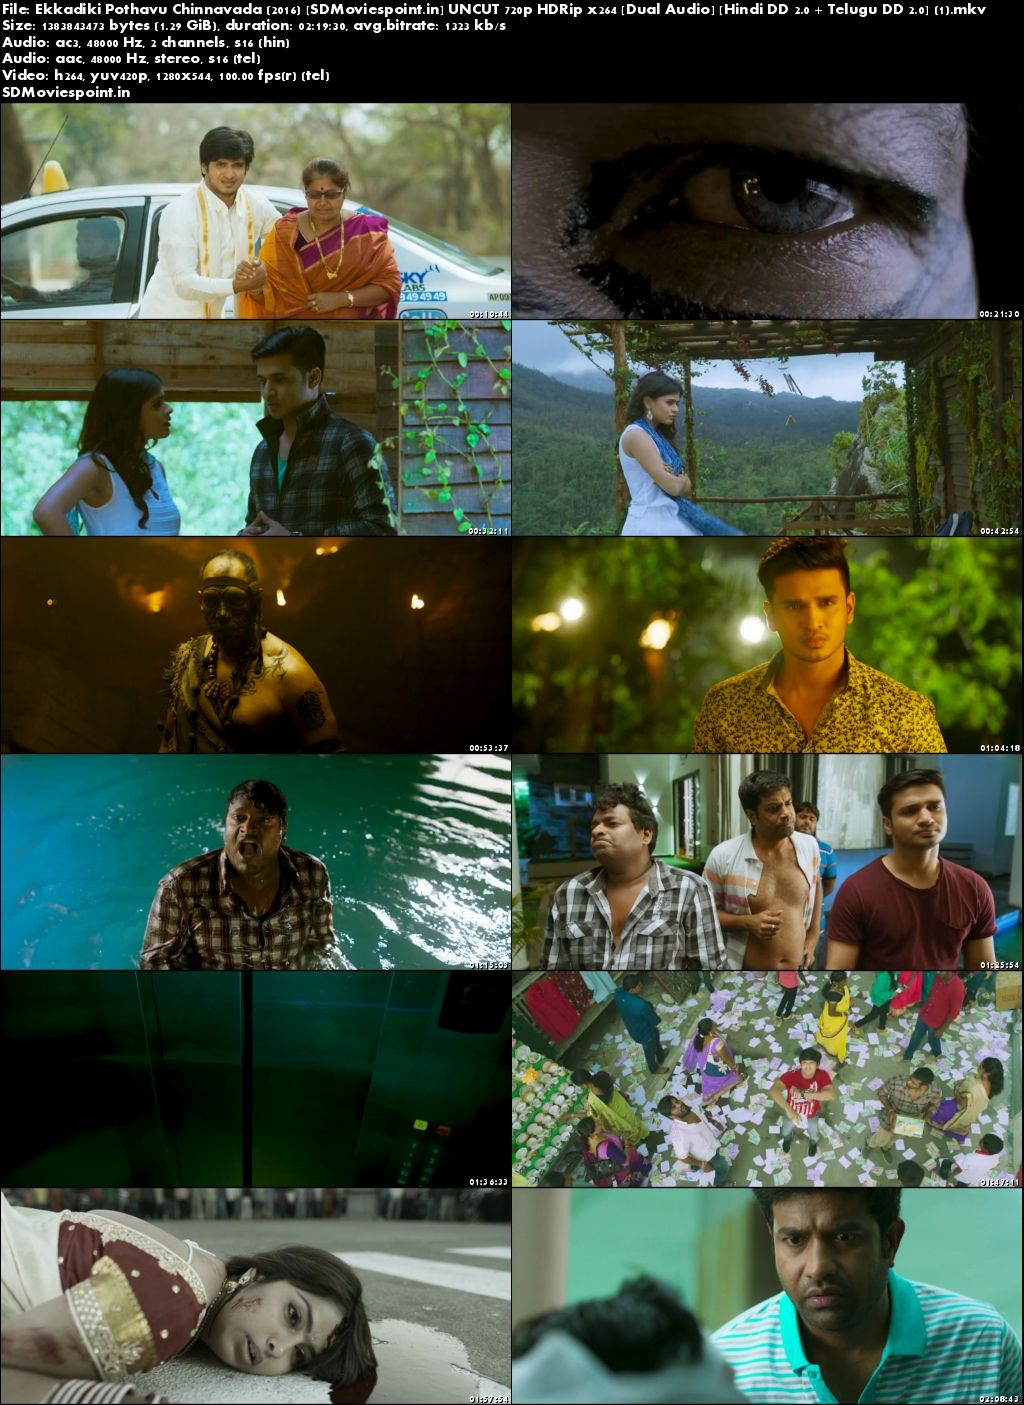 Screen Shots Ekkadiki Pothavu Chinnavada 2016 Full Movie Telugu Dual Audio In Hindi Free Download